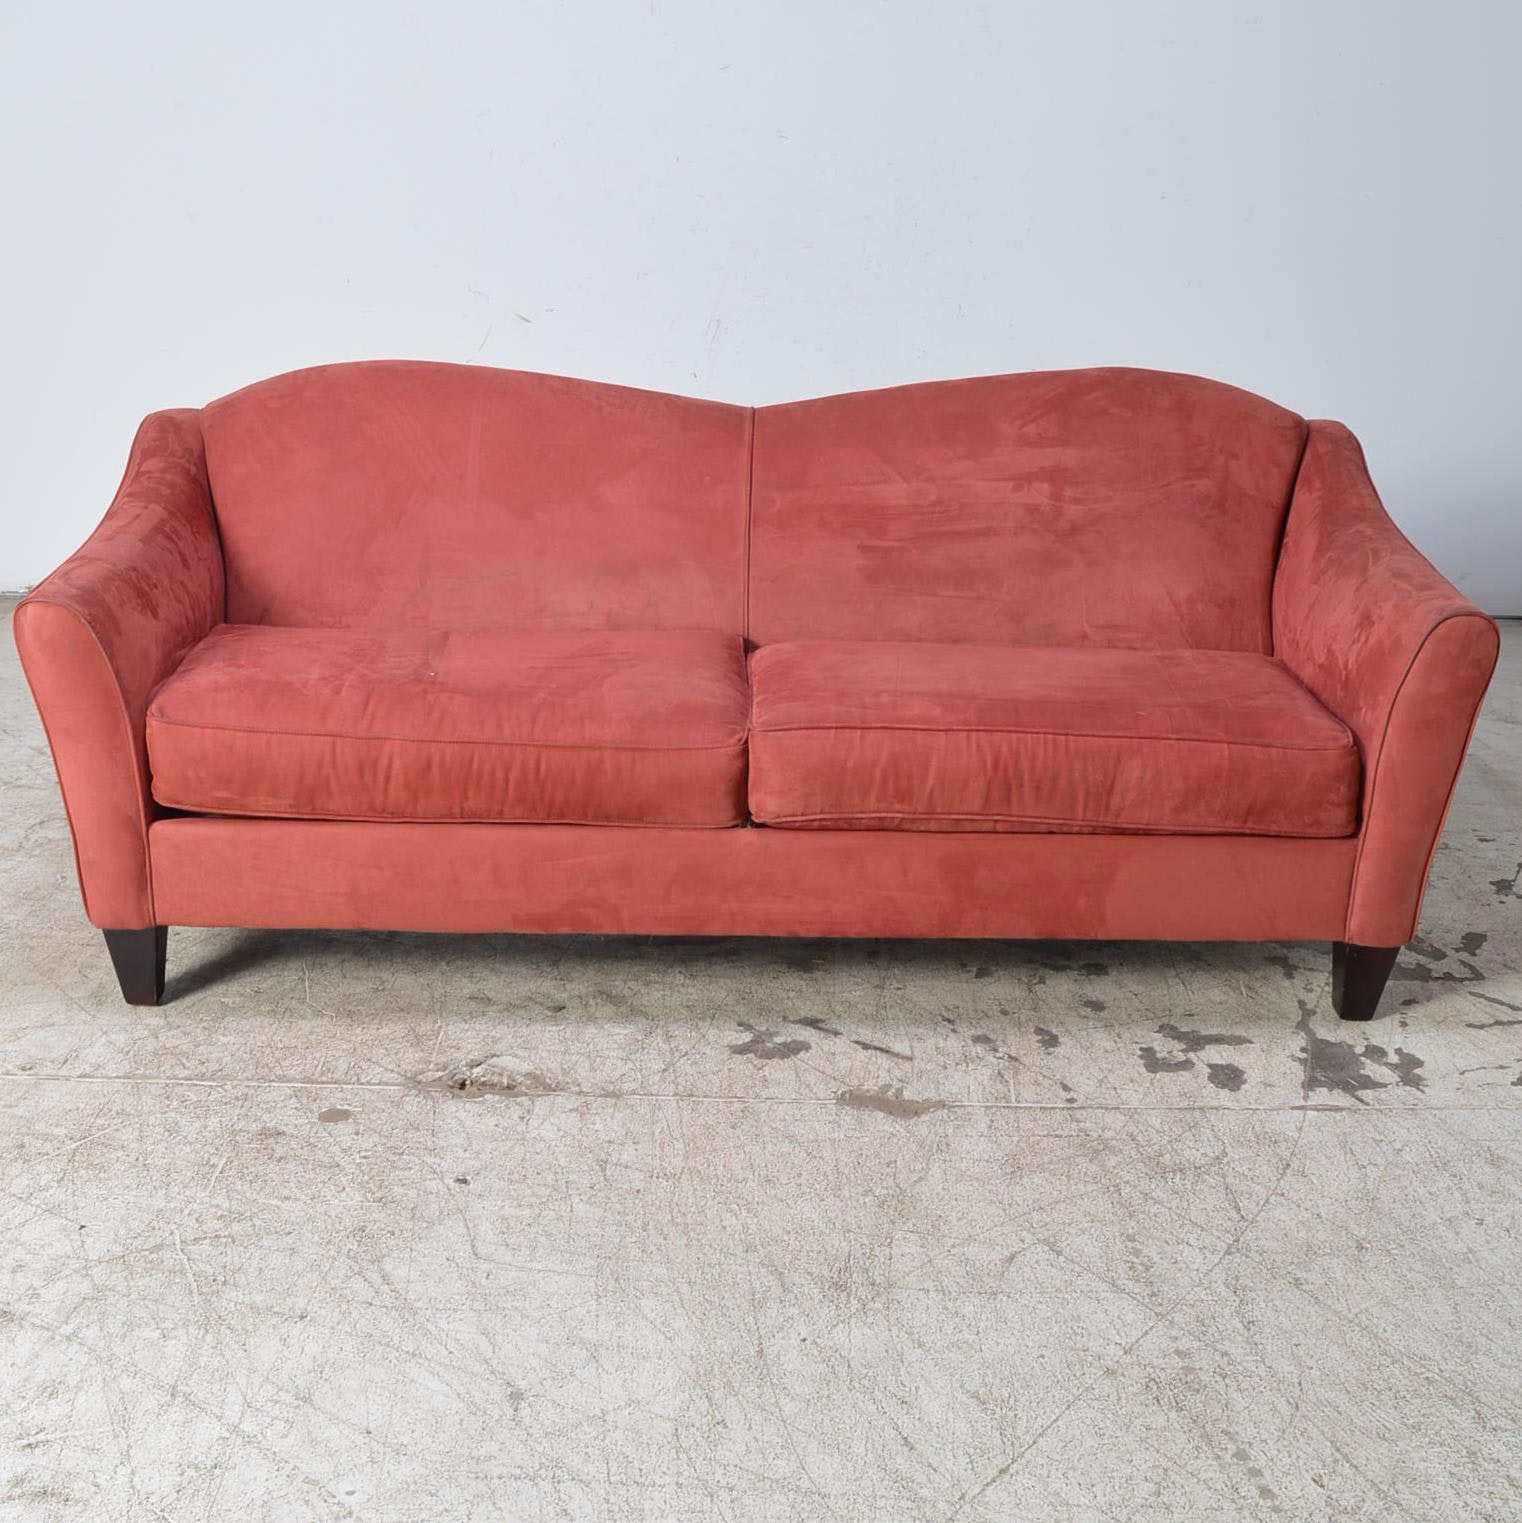 Contemporary Red Microfiber Camelback Sofa By Bauhaus Furniture ...